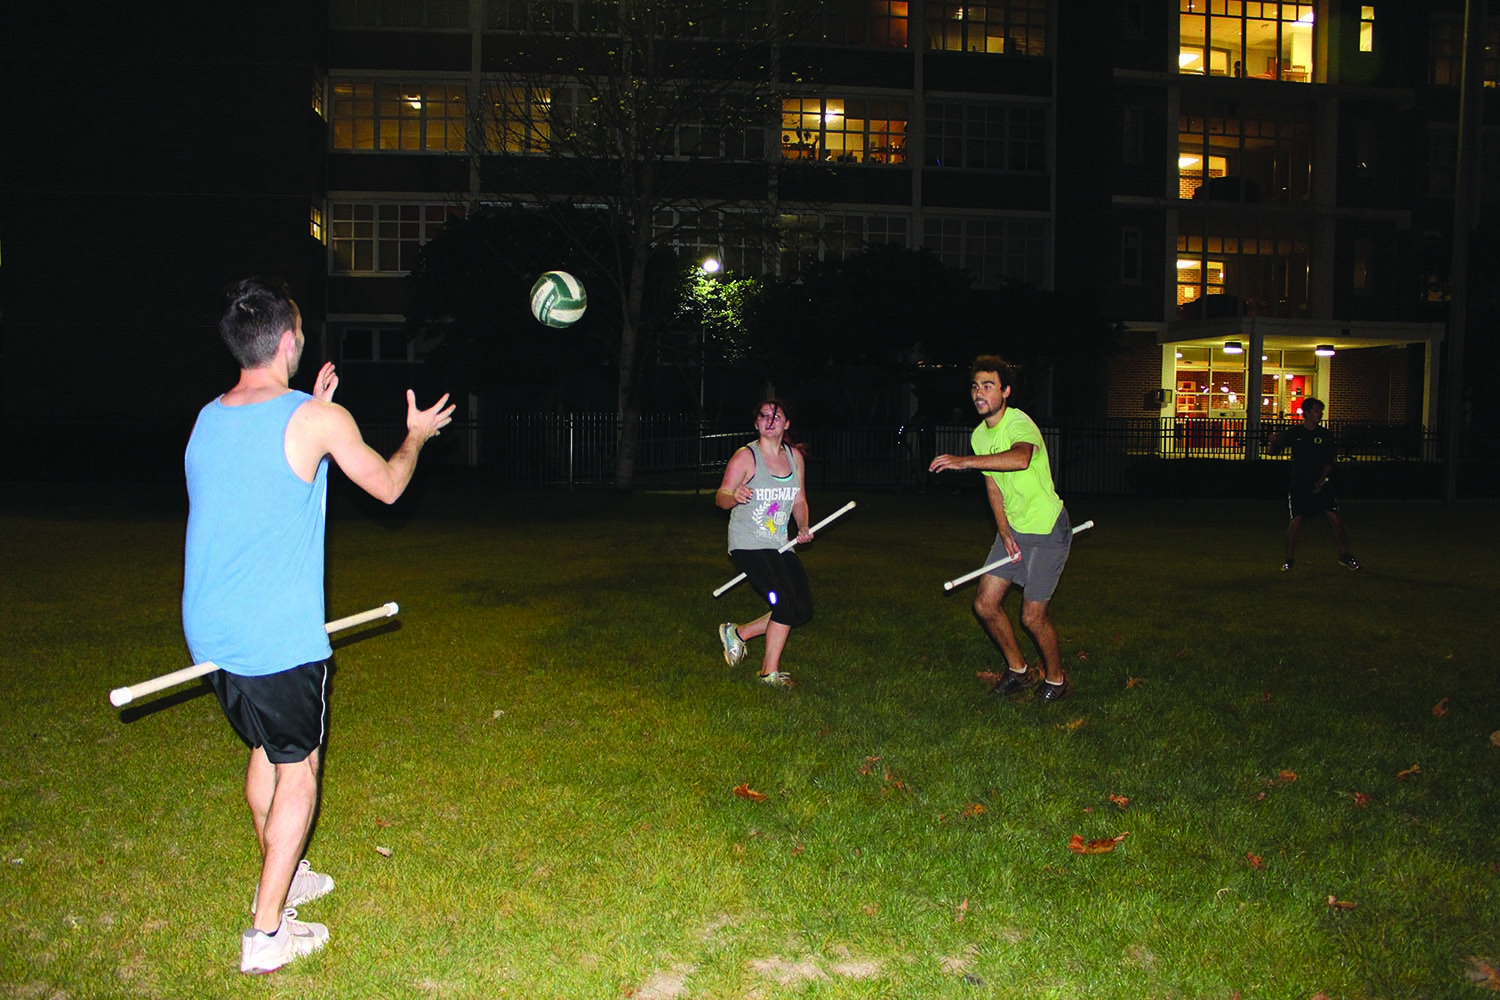 Jeremy Gretzer, theater sophomore and team captain (left), receives a pass from Sebastian Gomez (right), biology sophomore and team captain, as Shannon Garrety, english and business freshman defends (middle). The quidditch team is currently training and recruiting to prepare for next season. Photo credit: Alliciyia George